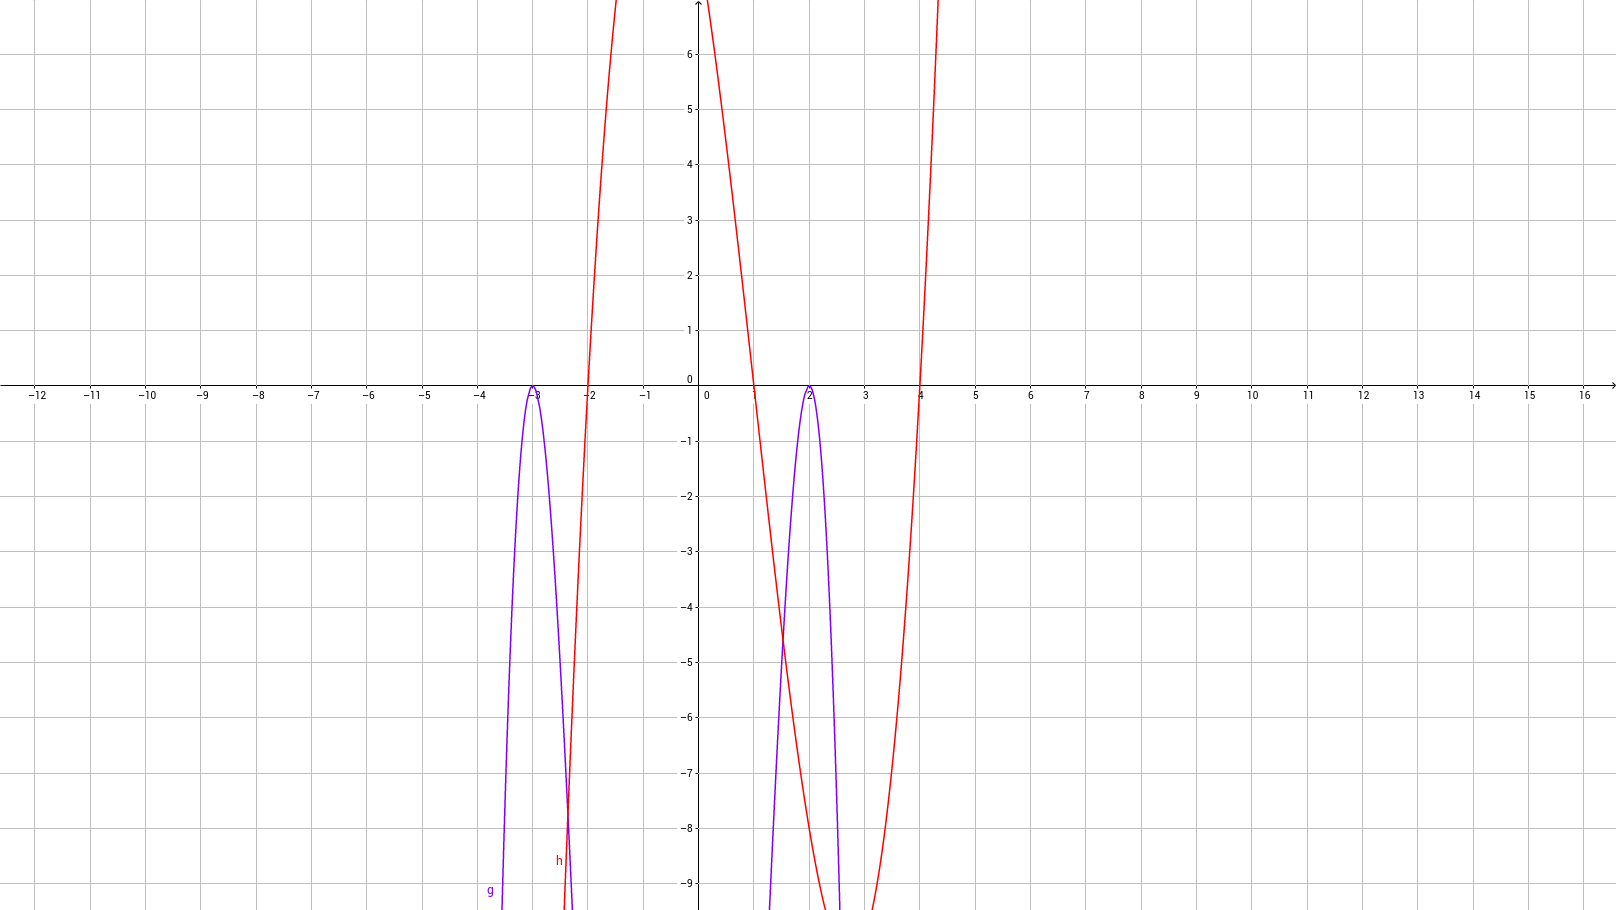 Creating a Polynomial Equation based on the Graph